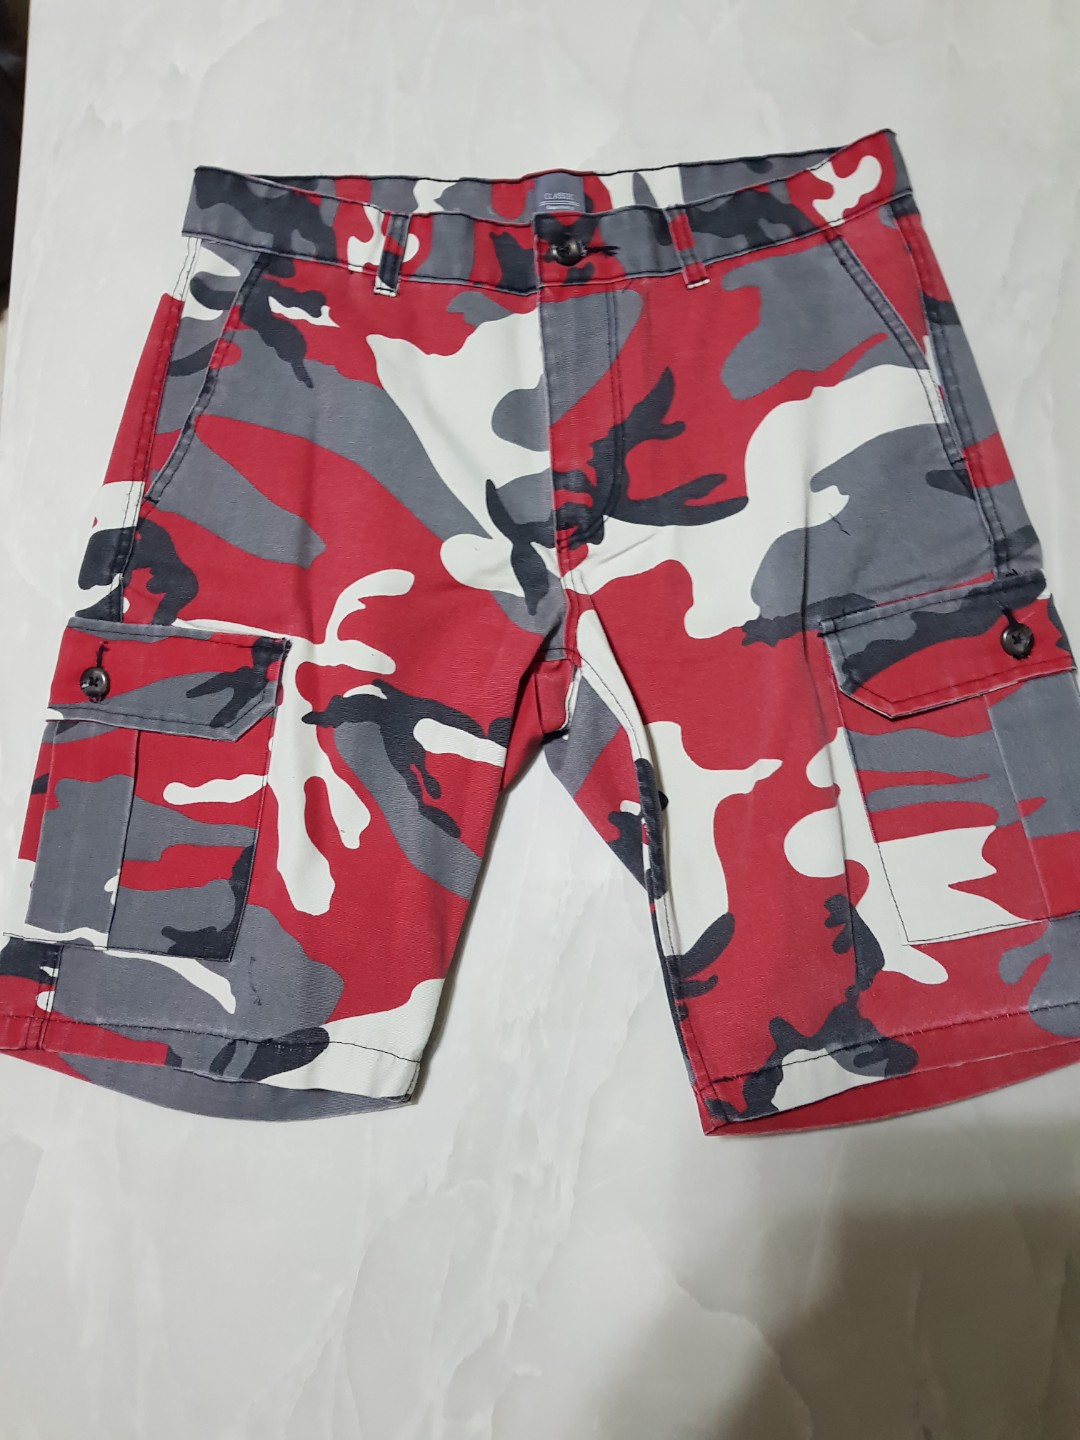 c9b884cea8 GAP Camo Cargo Shorts, Men's Fashion, Clothes on Carousell